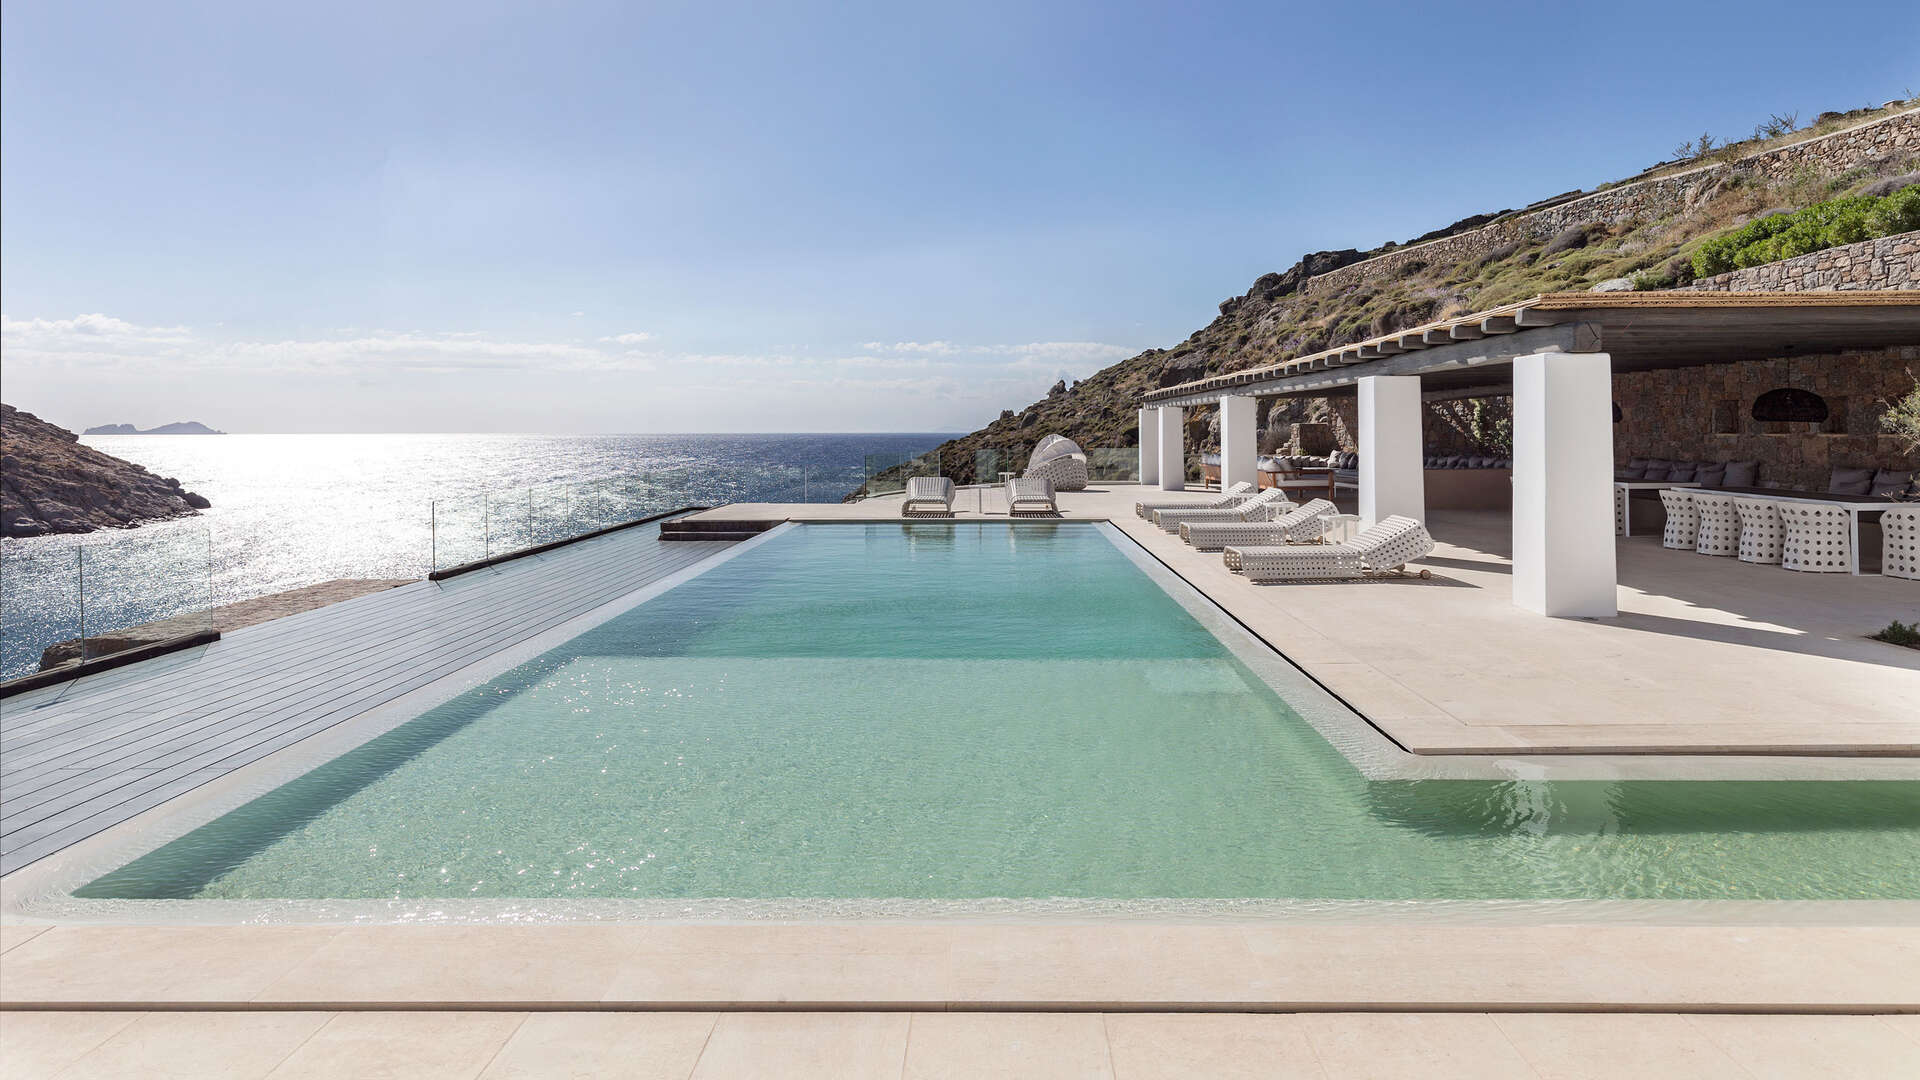 Luxury vacation rentals europe - Greece - Mykonos - Agia anna - Salacia - Image 1/22